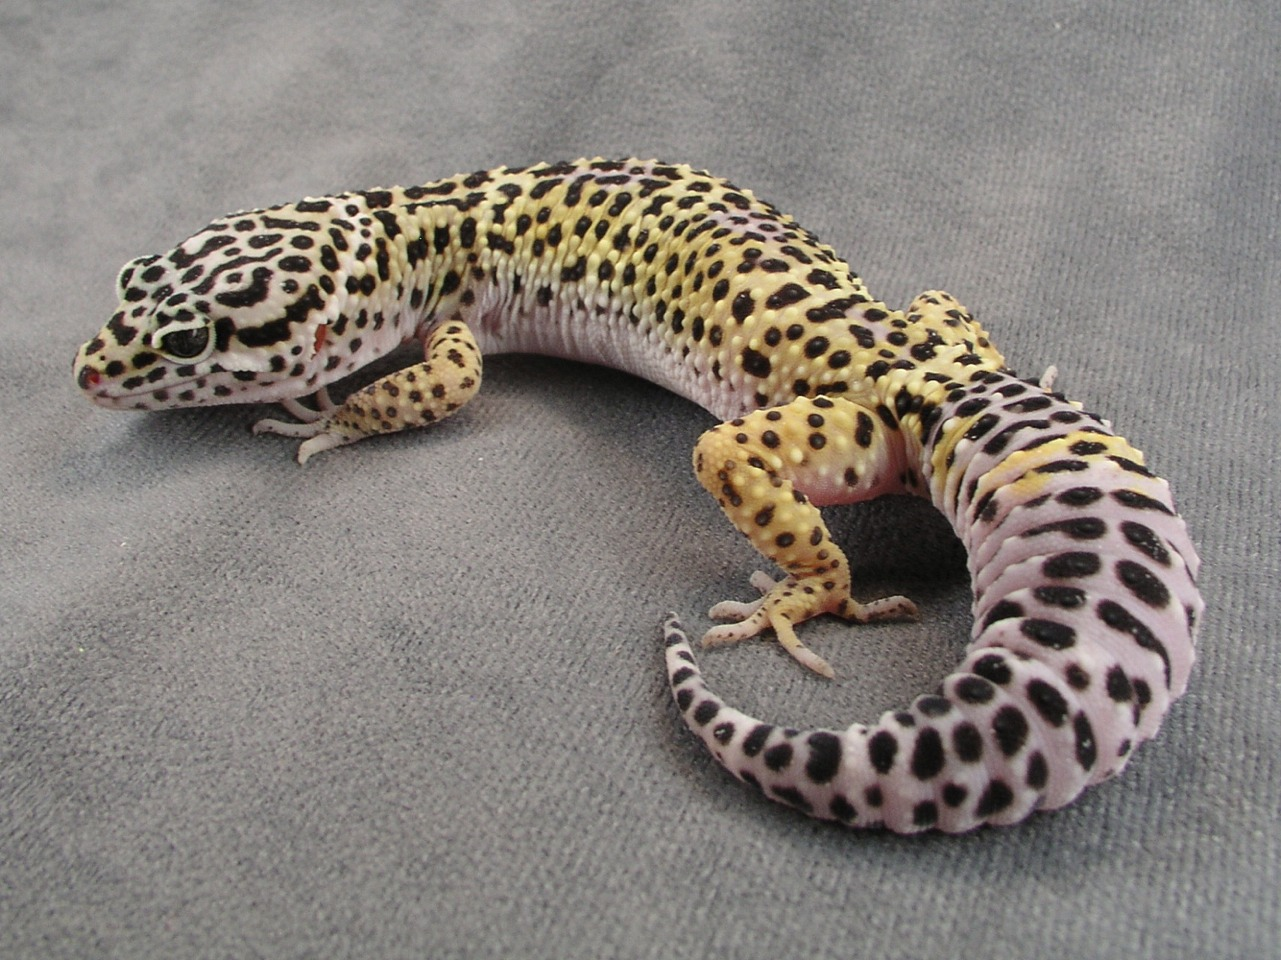 Leopard Gecko: They range in many colors. They are the best reptile for beginners. I have owned one and he was so sweet! They mostly range from $25-$50.